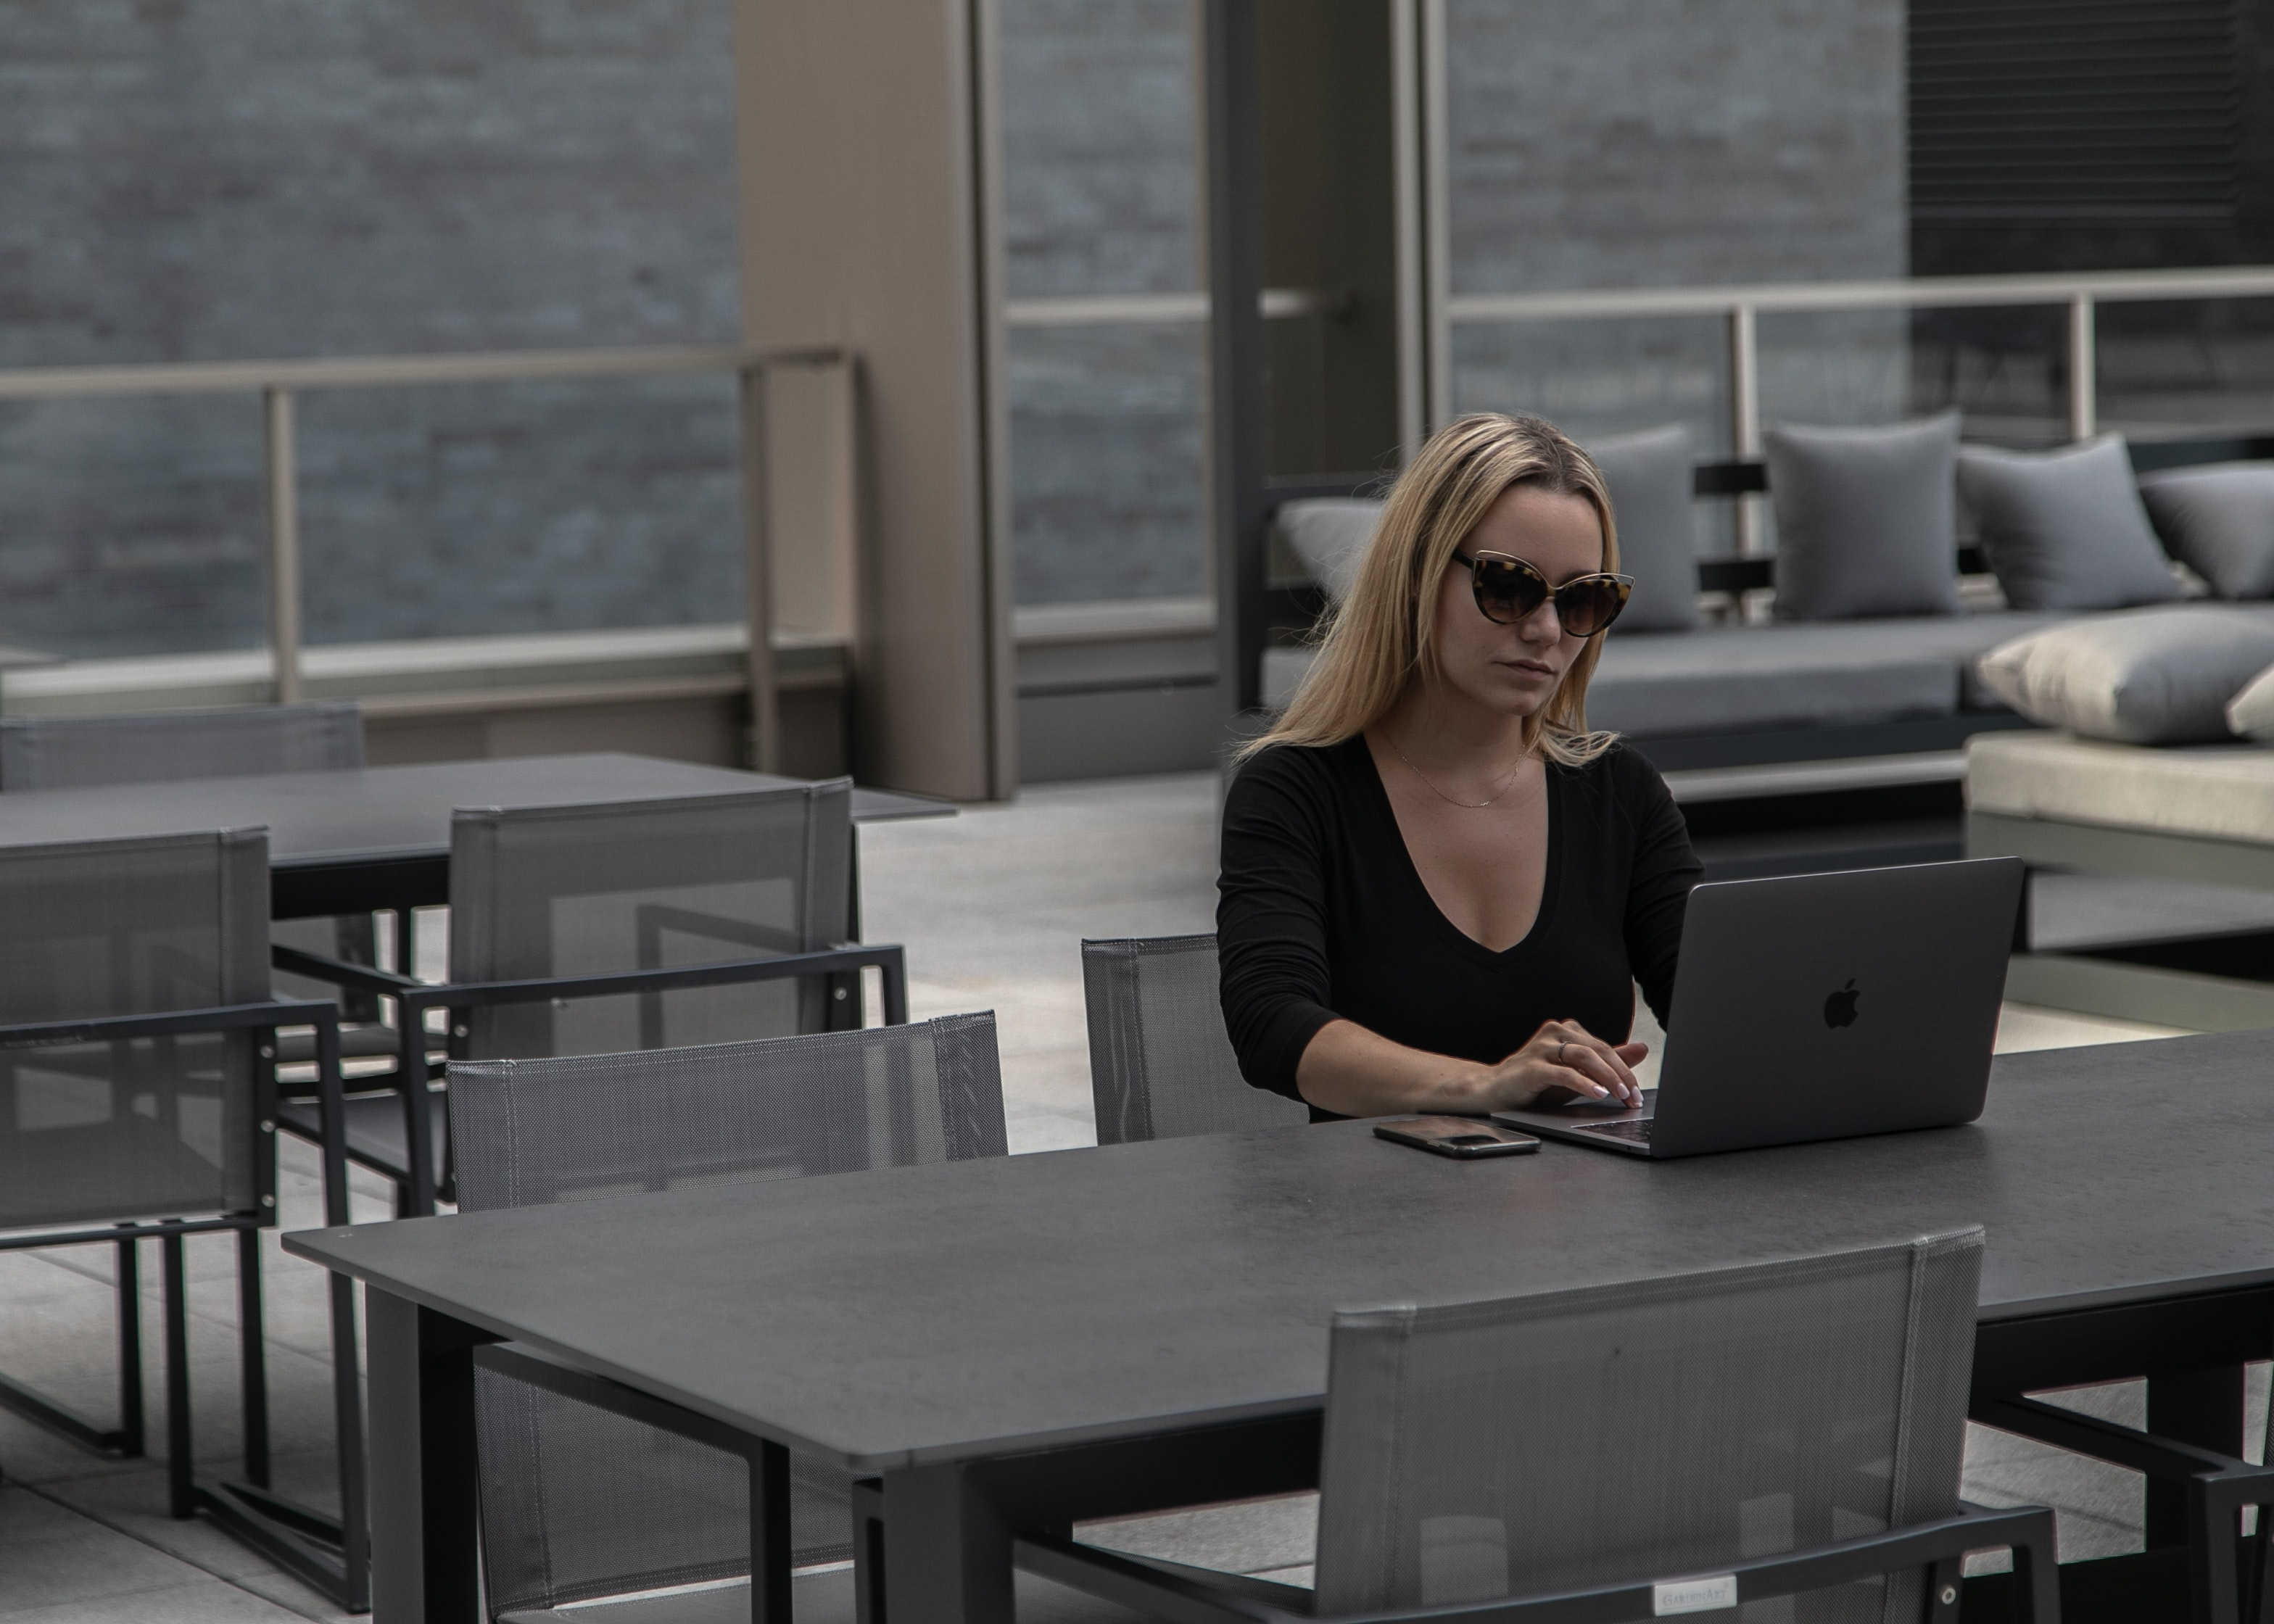 woman-working-on-computer-wearing-sunglasses